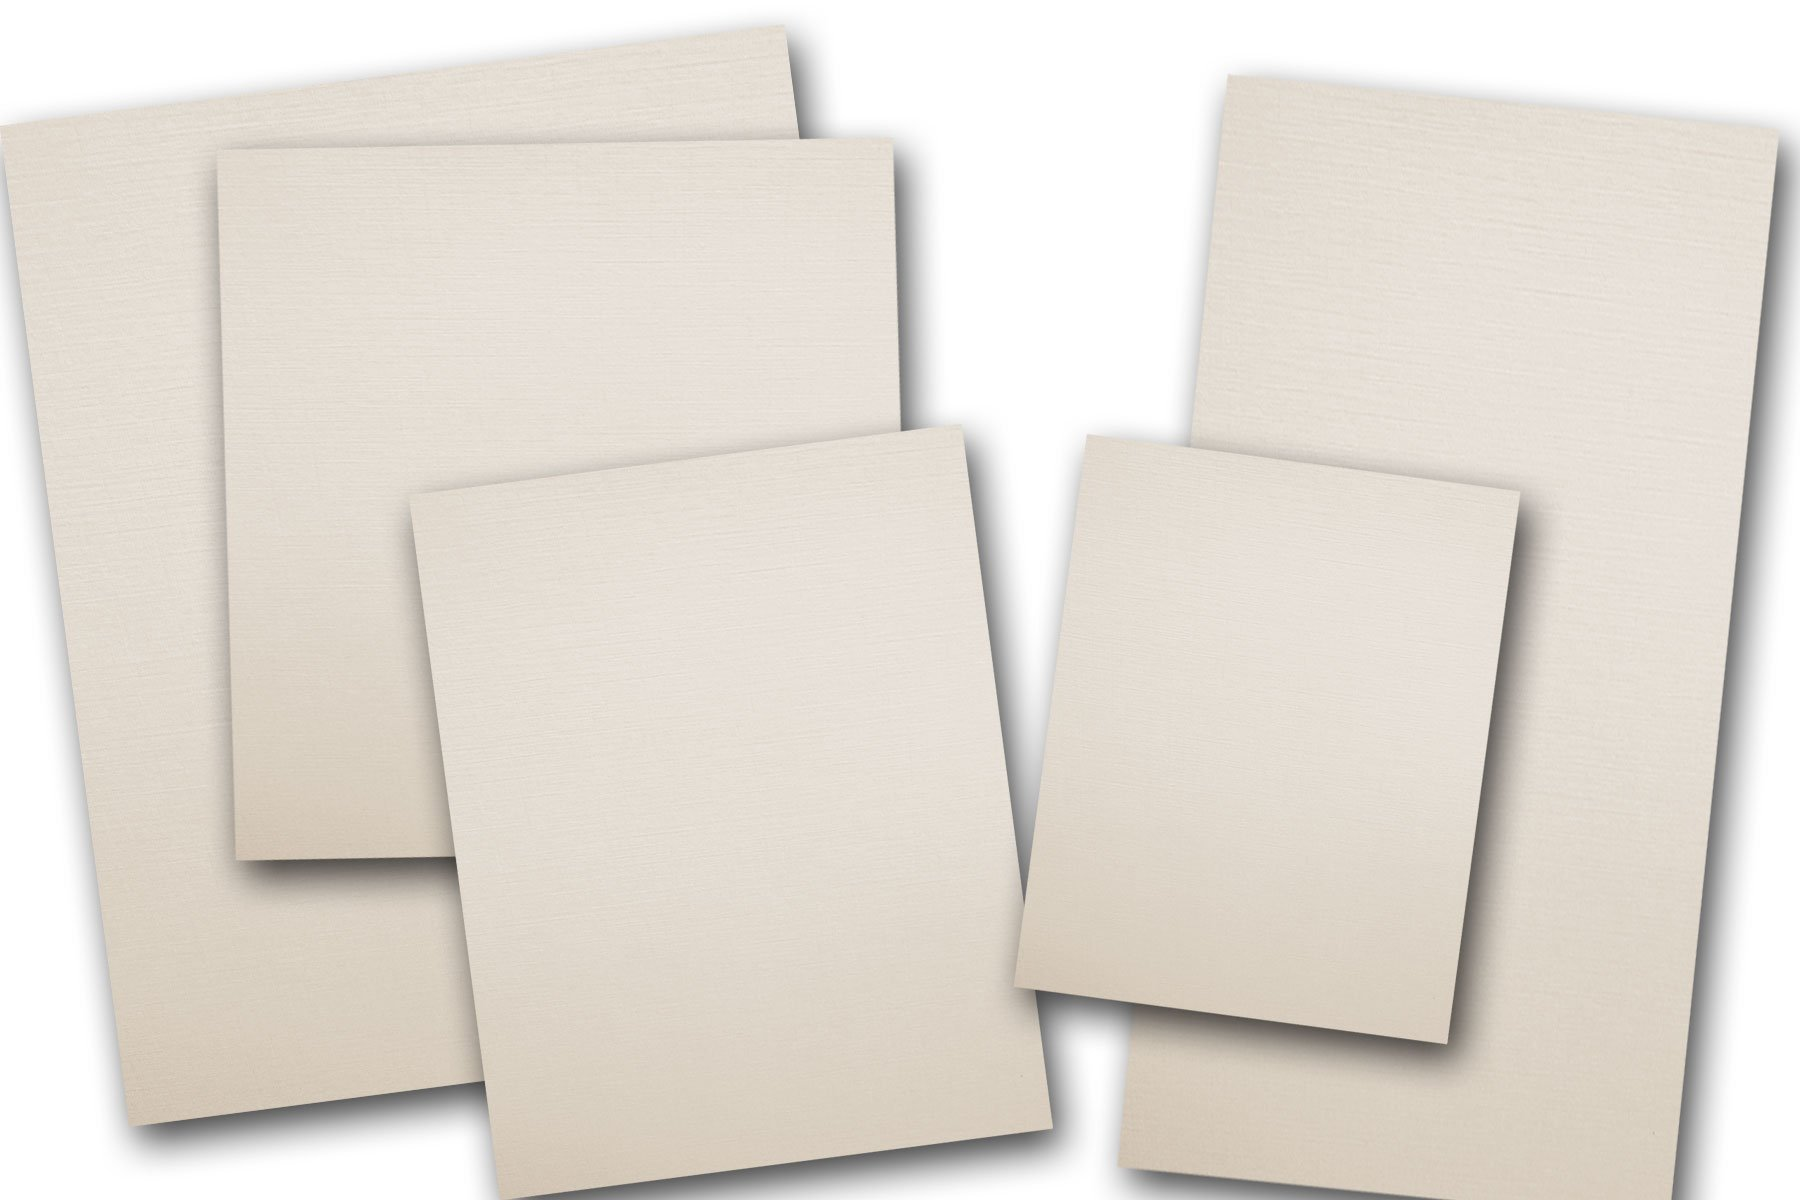 Blank Classic Linen 80 lb Natural White 5x7 Card Stock - 250 Pack